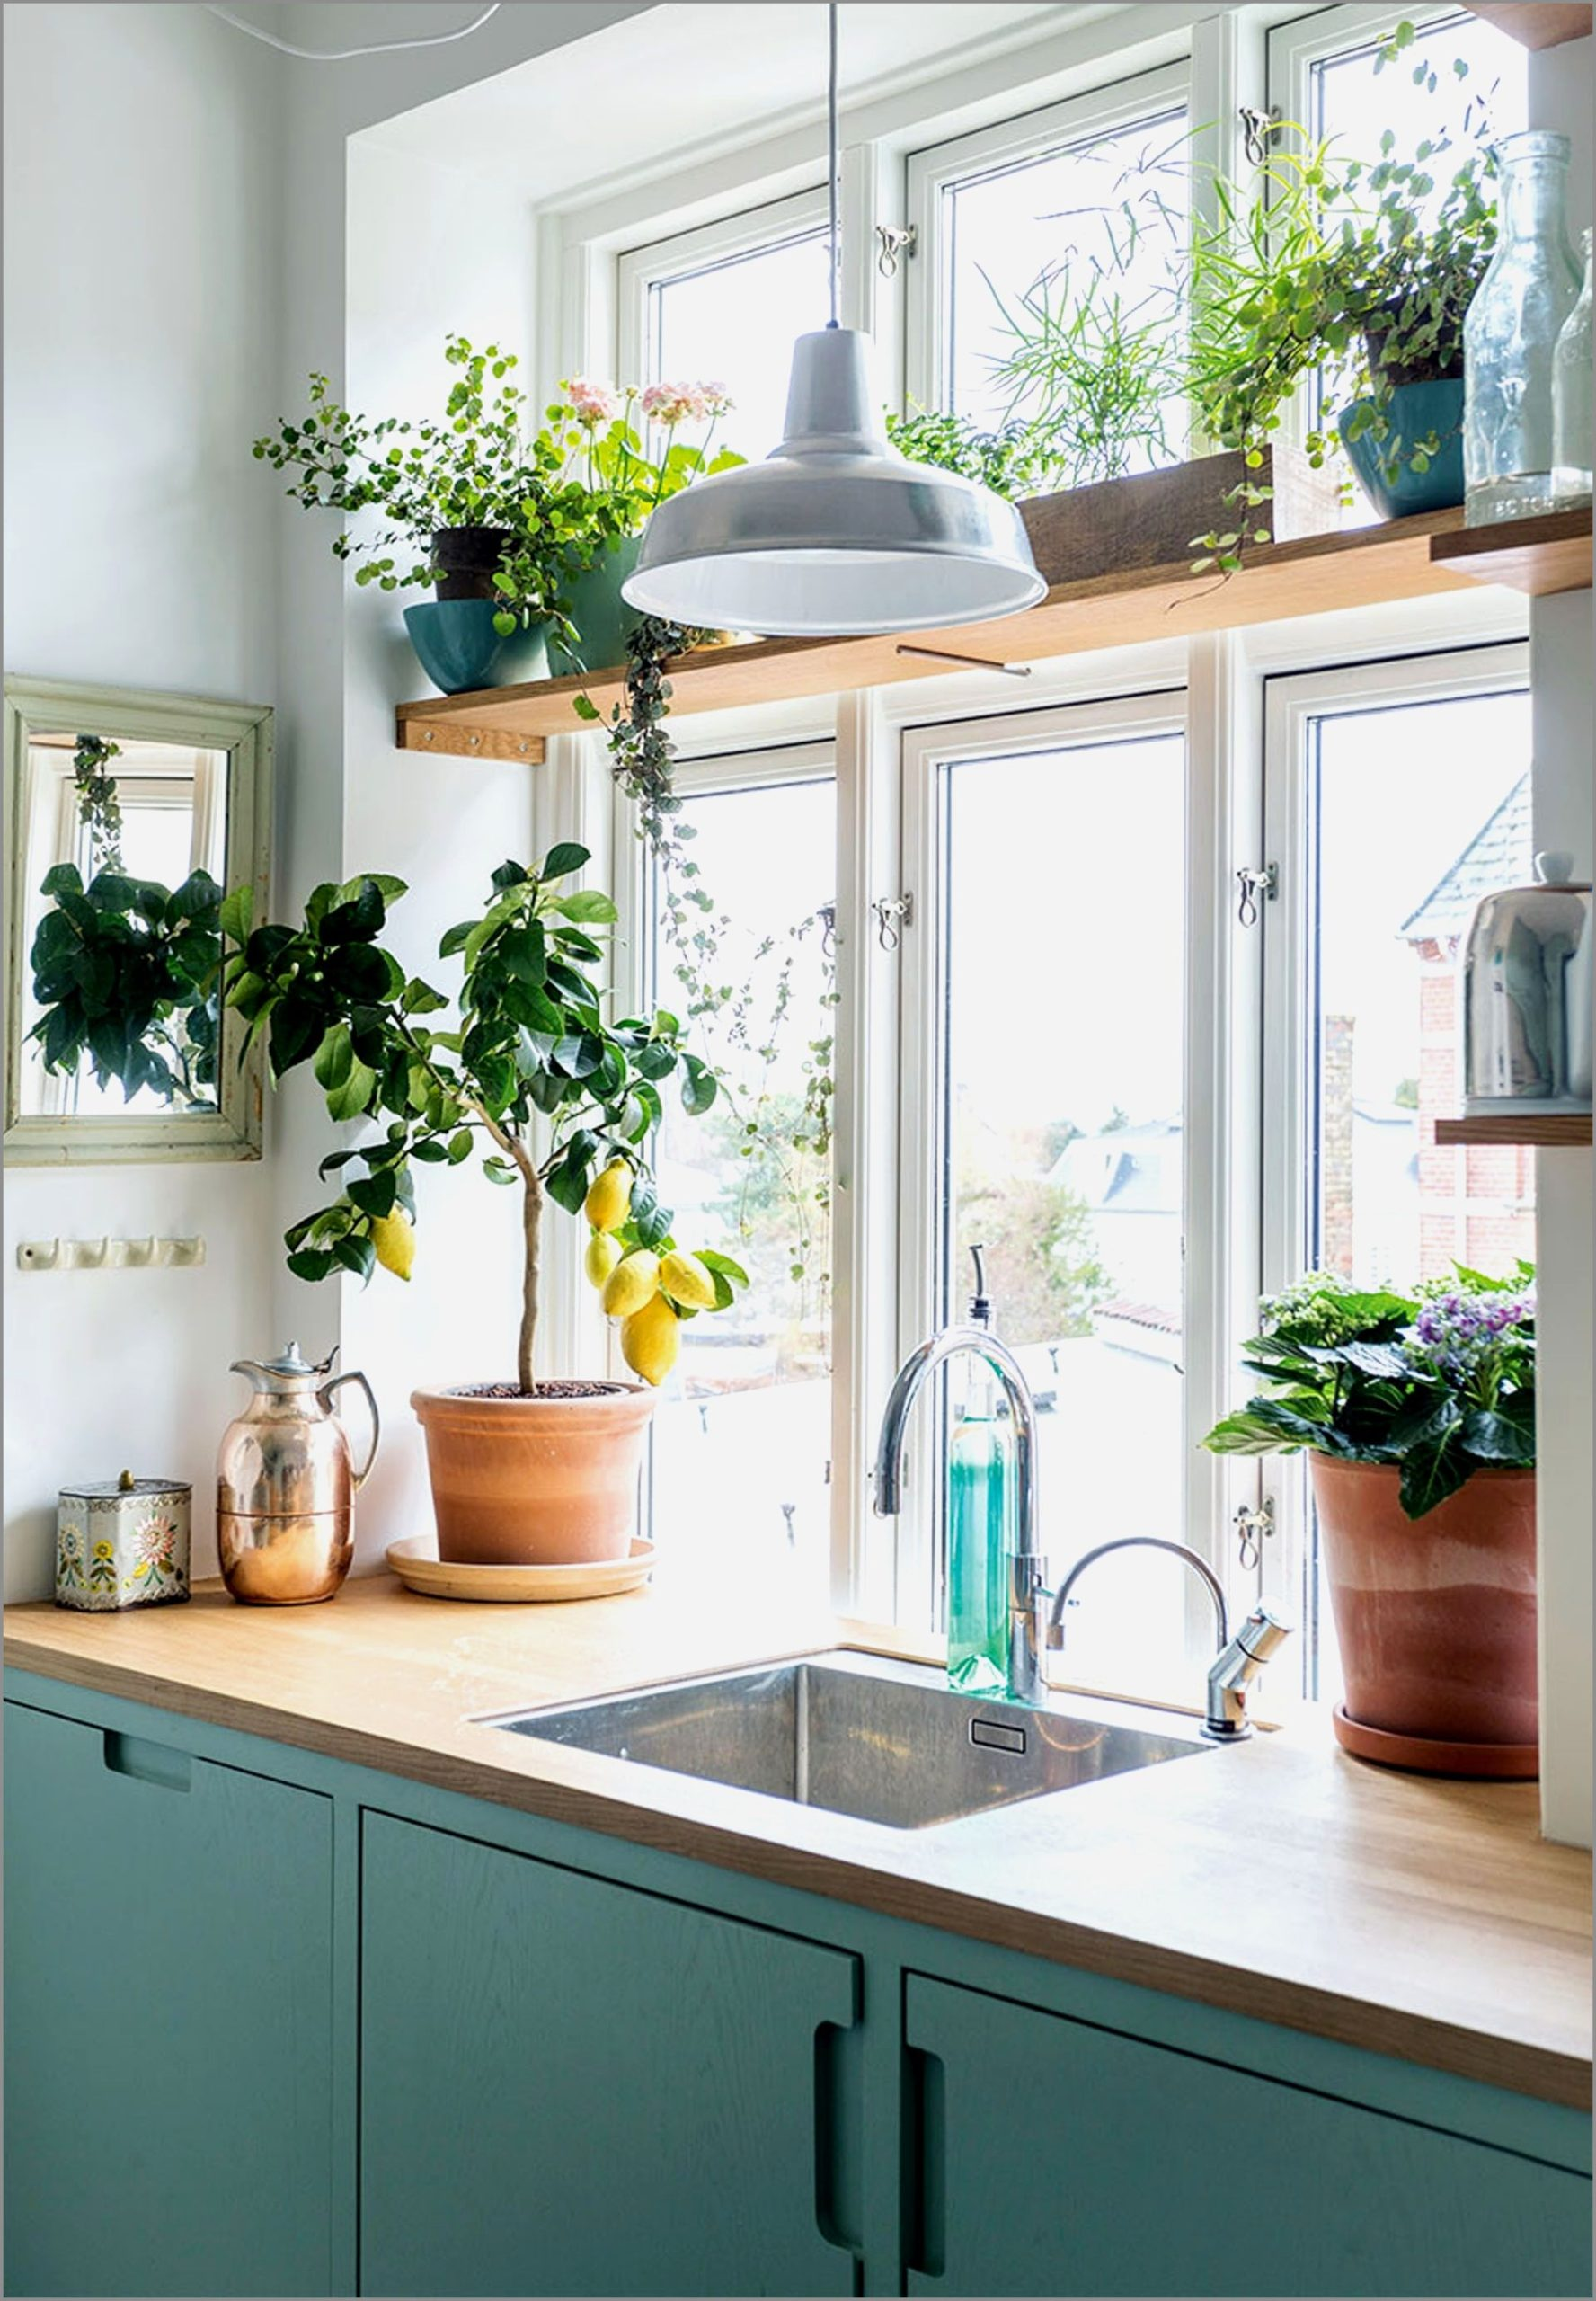 Adding-plants-2-scaled 80+ Unusual Kitchen Design Ideas for Small Spaces in 2021